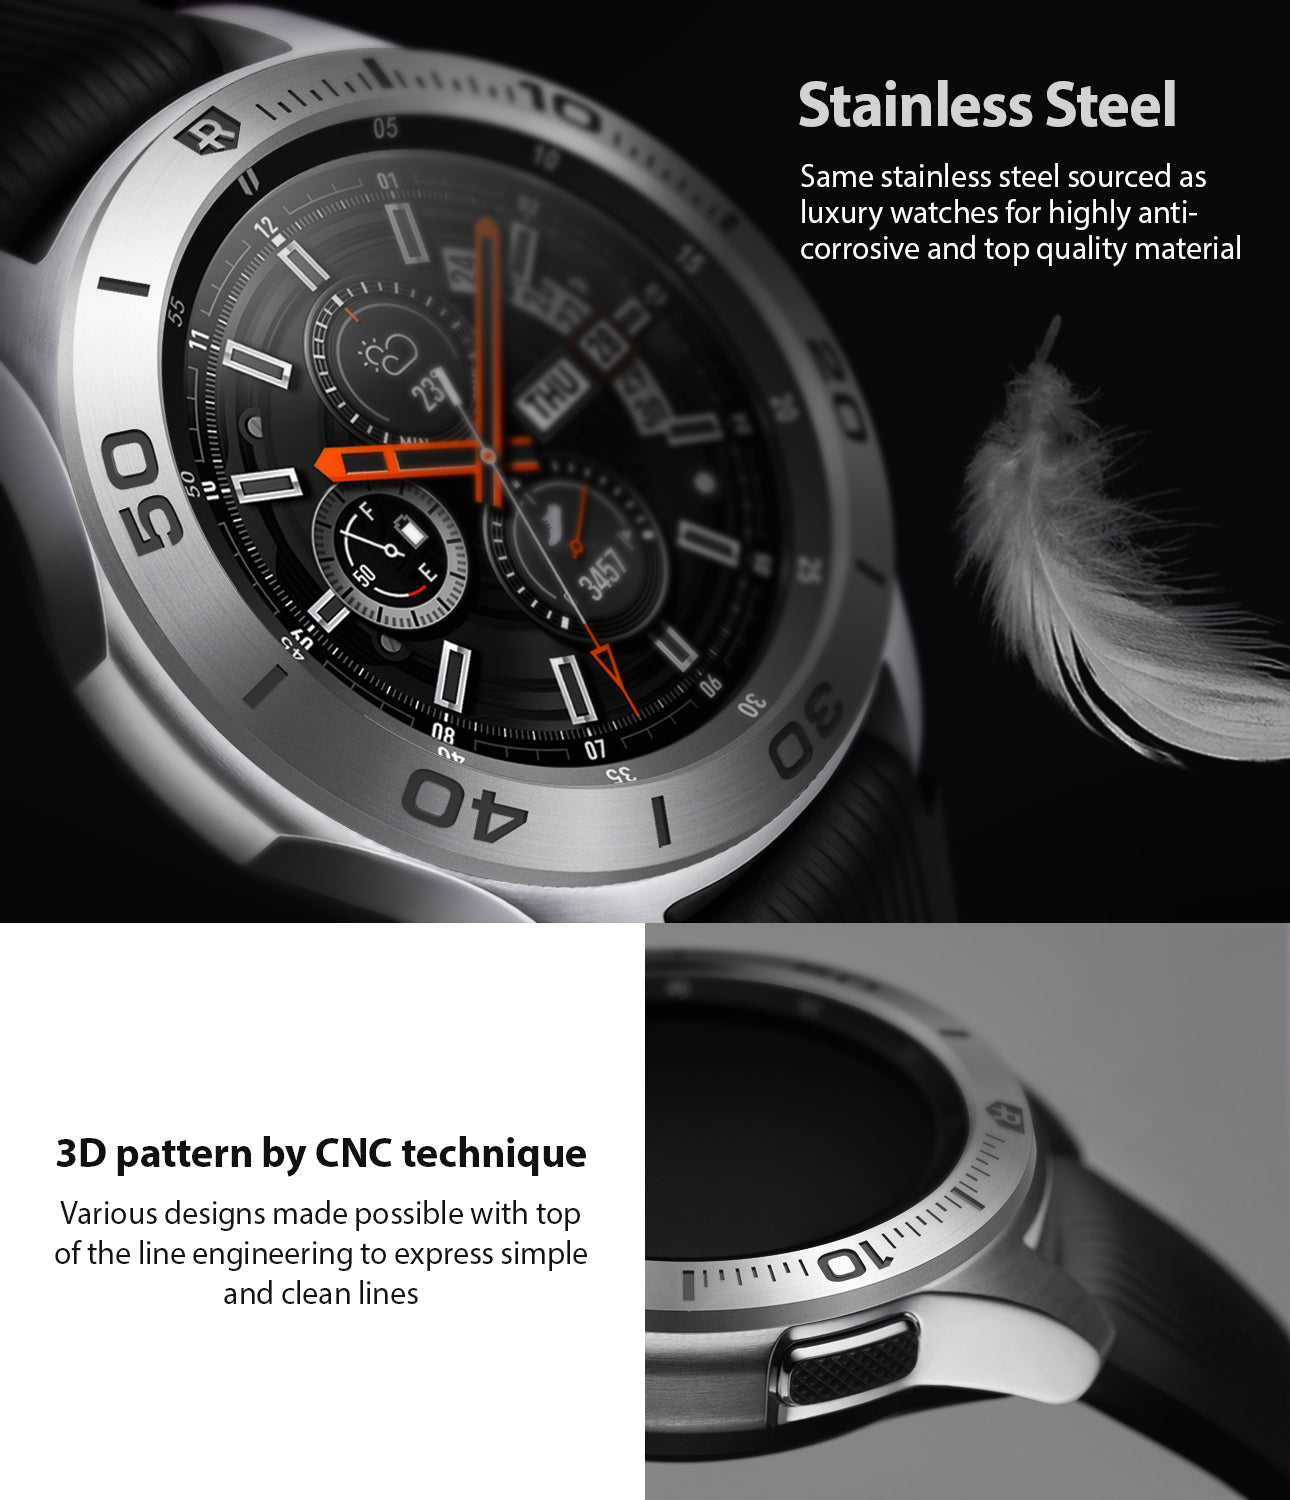 ringke bezel styling for samsung galaxy watch 46mm silver stainless steel - 3d pattern engraved with cnc technique